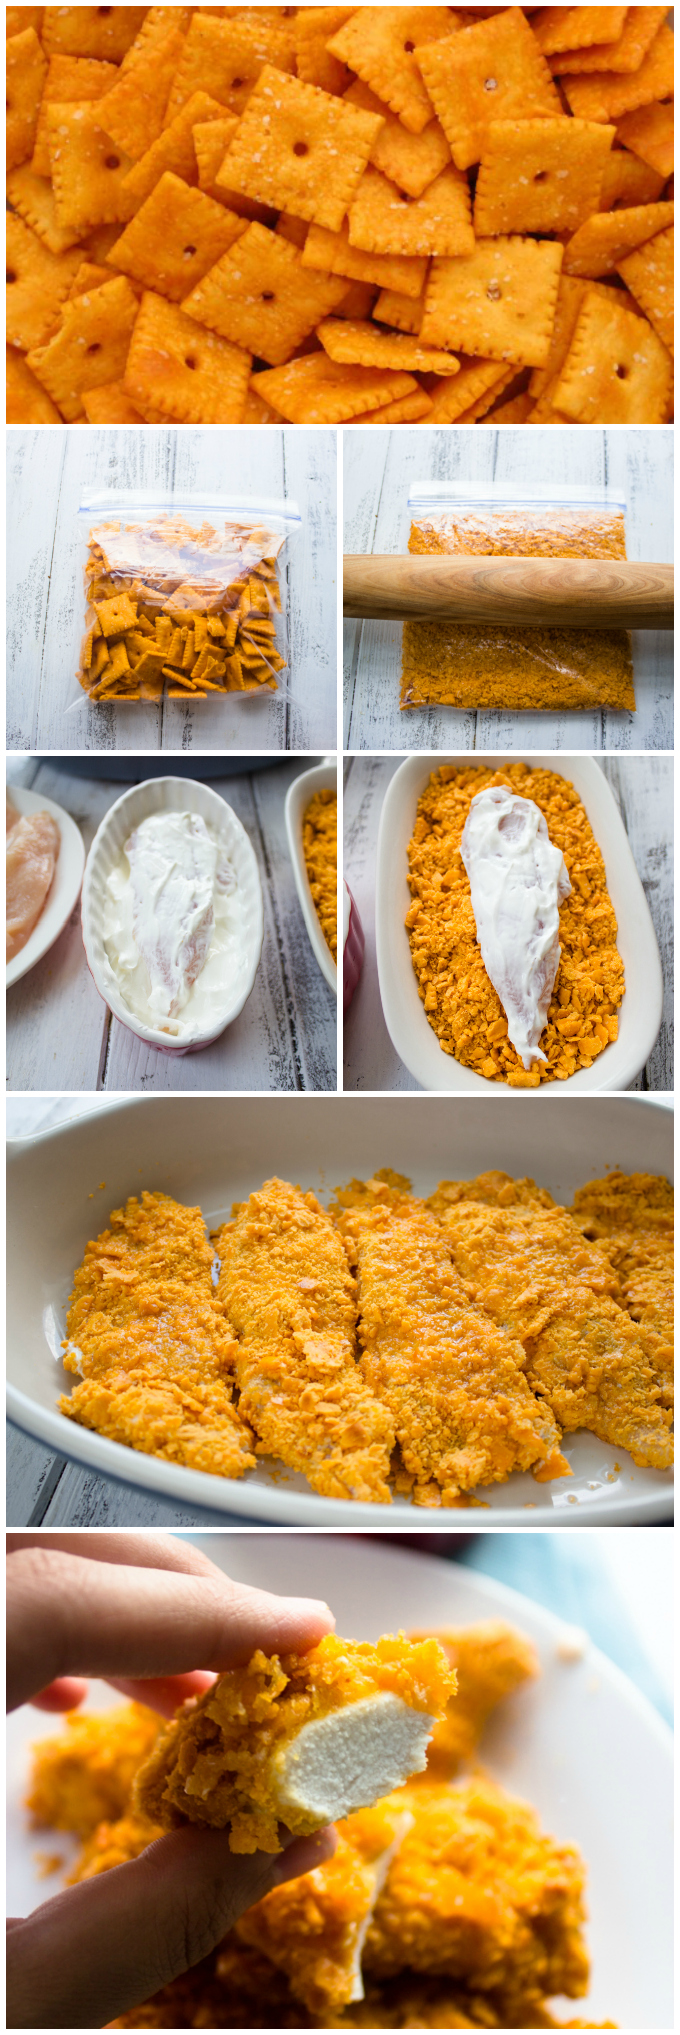 Cheese Nips Crusted Chicken Tenders